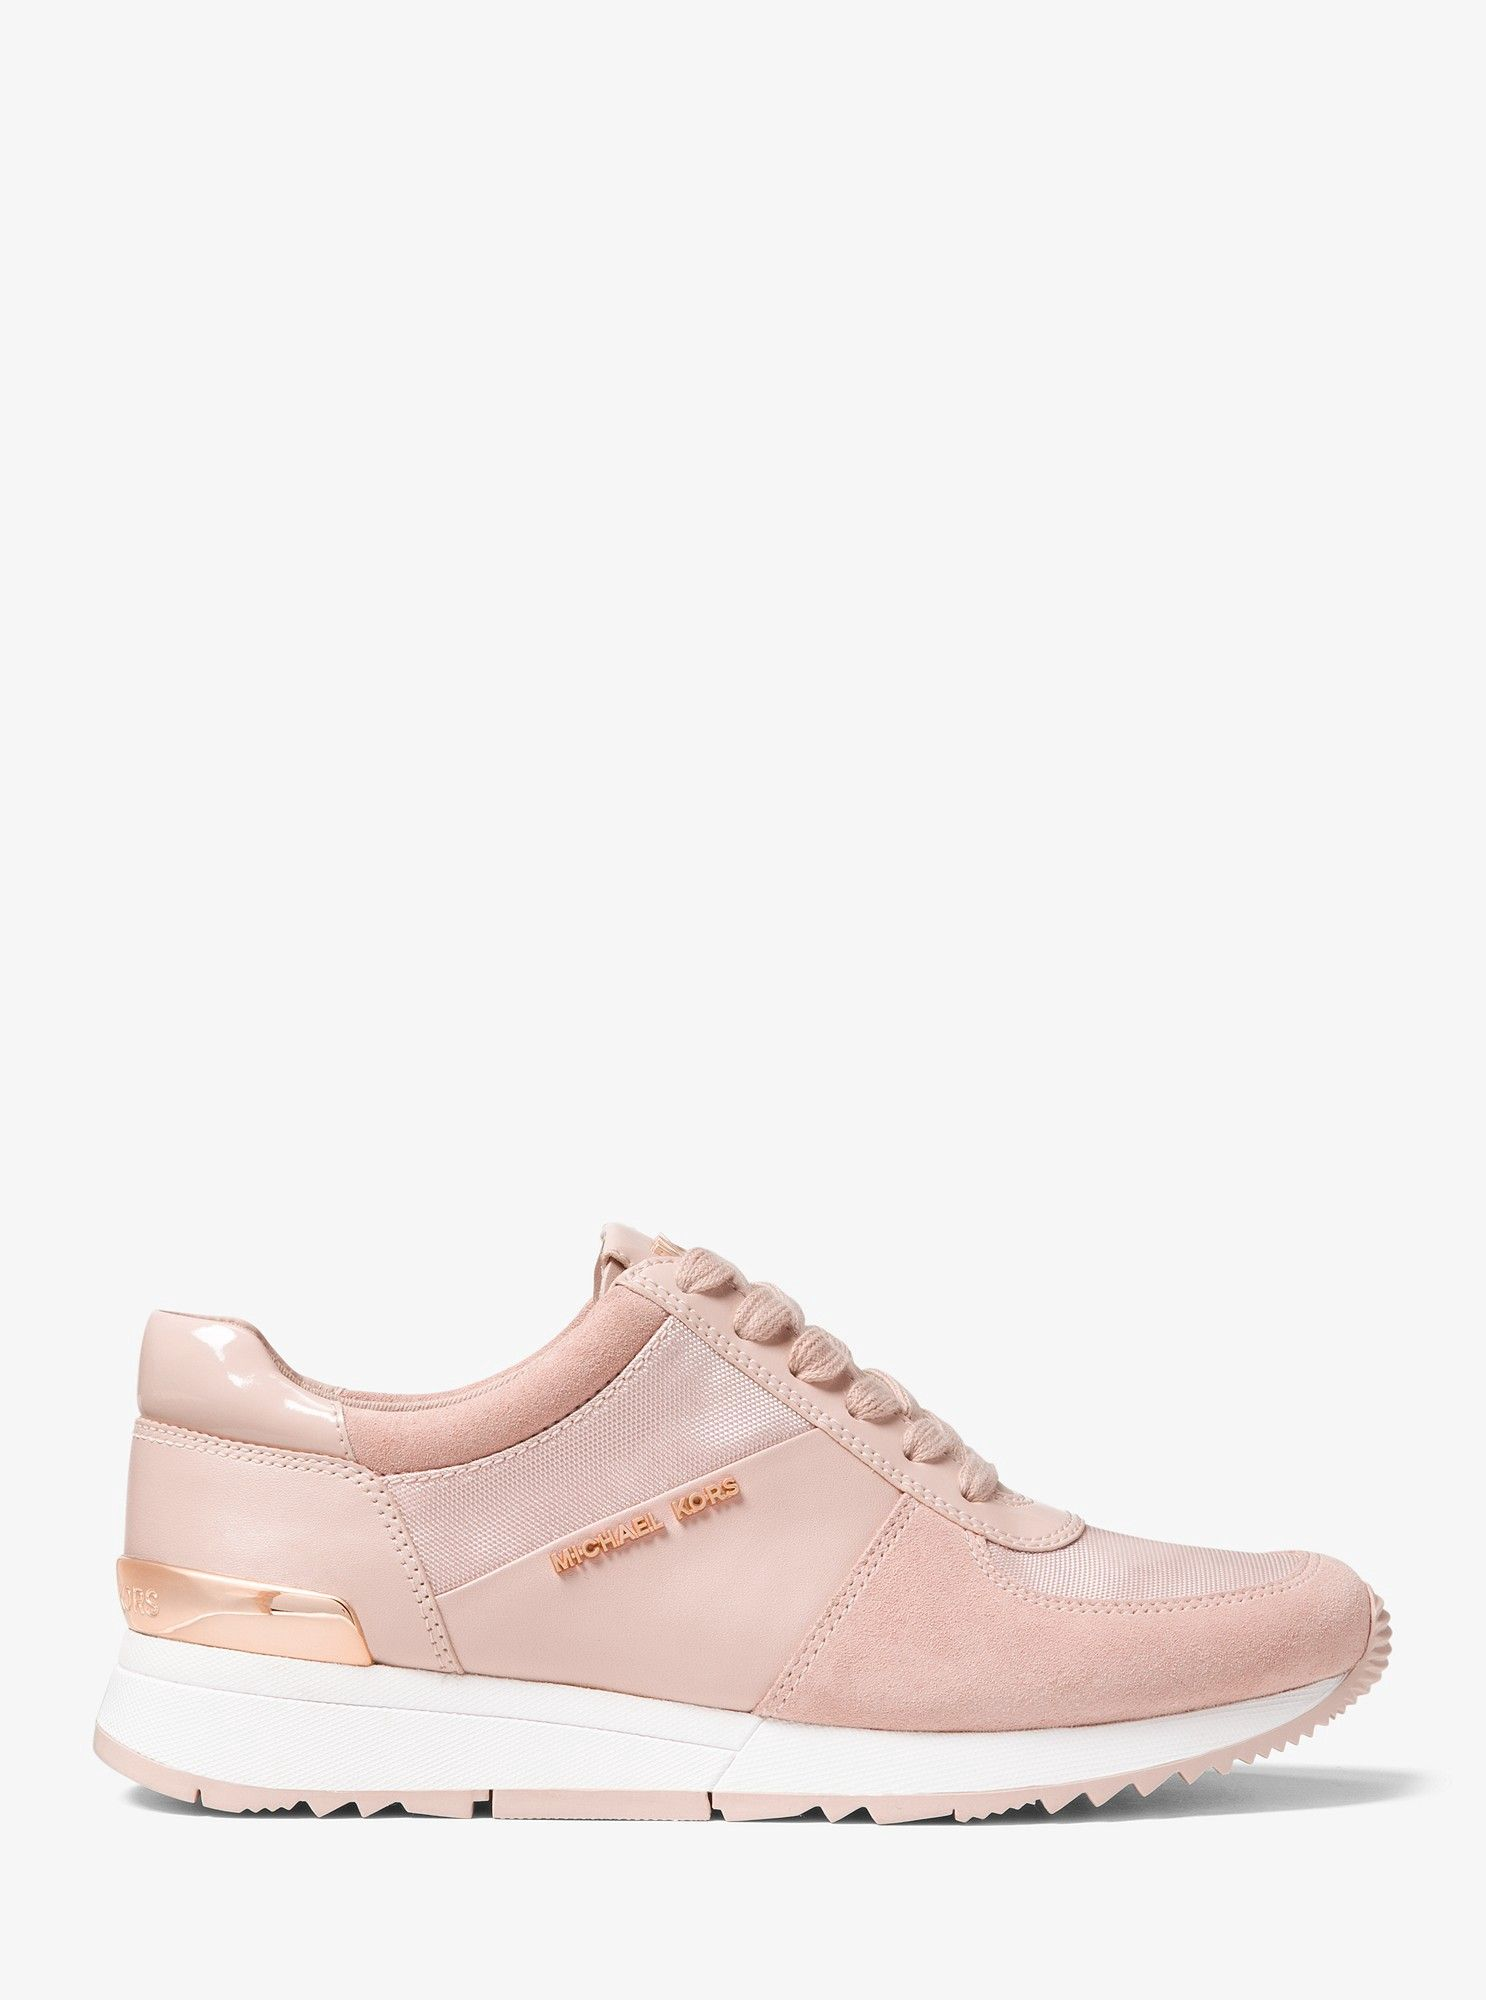 7cb946ed3558de Allie Leather and Canvas Sneaker by Michael Kors in 2019